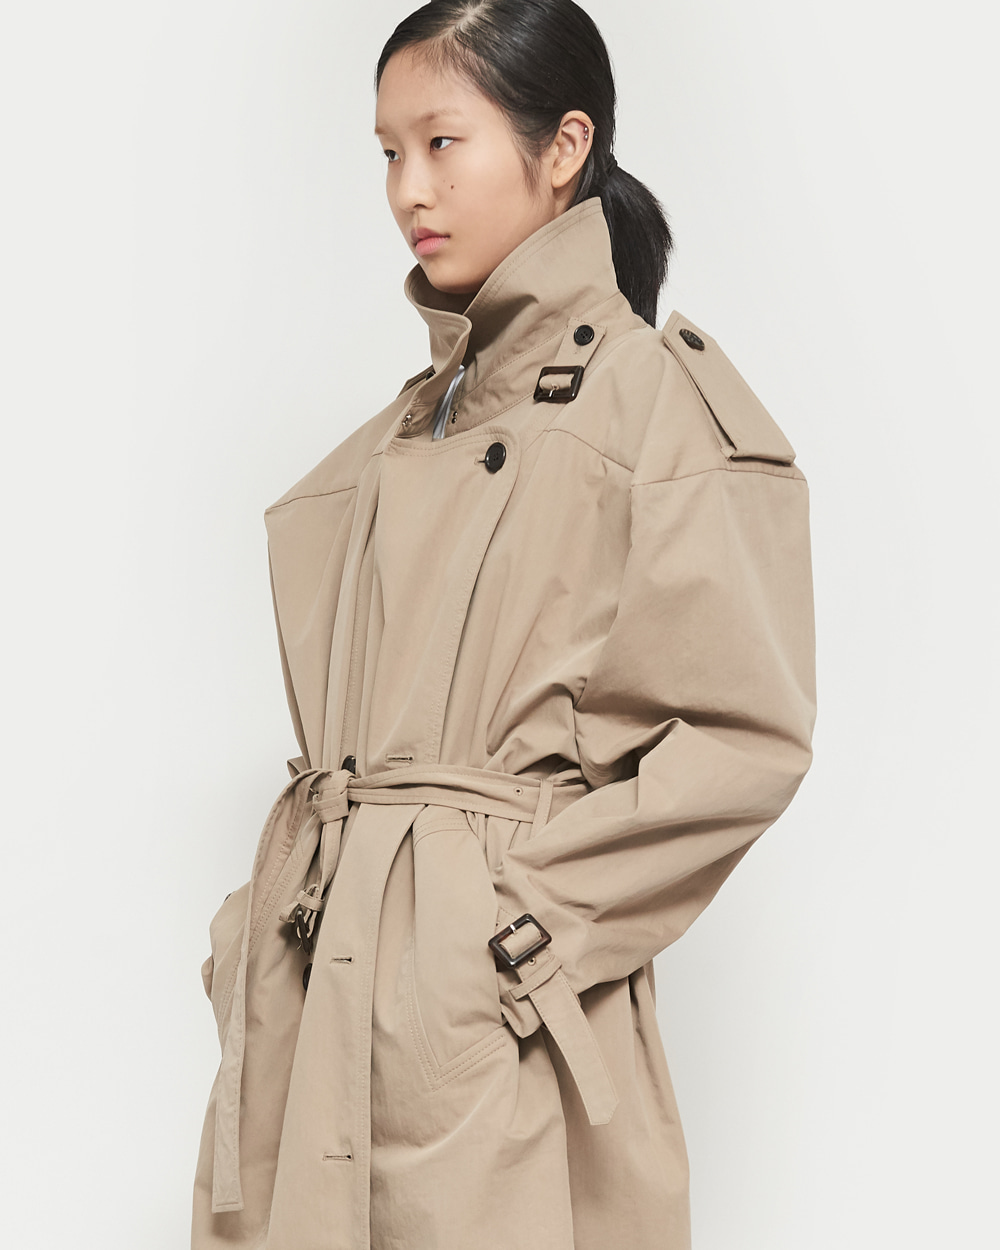 SS19 BOX SHOULDER TRENCH COAT